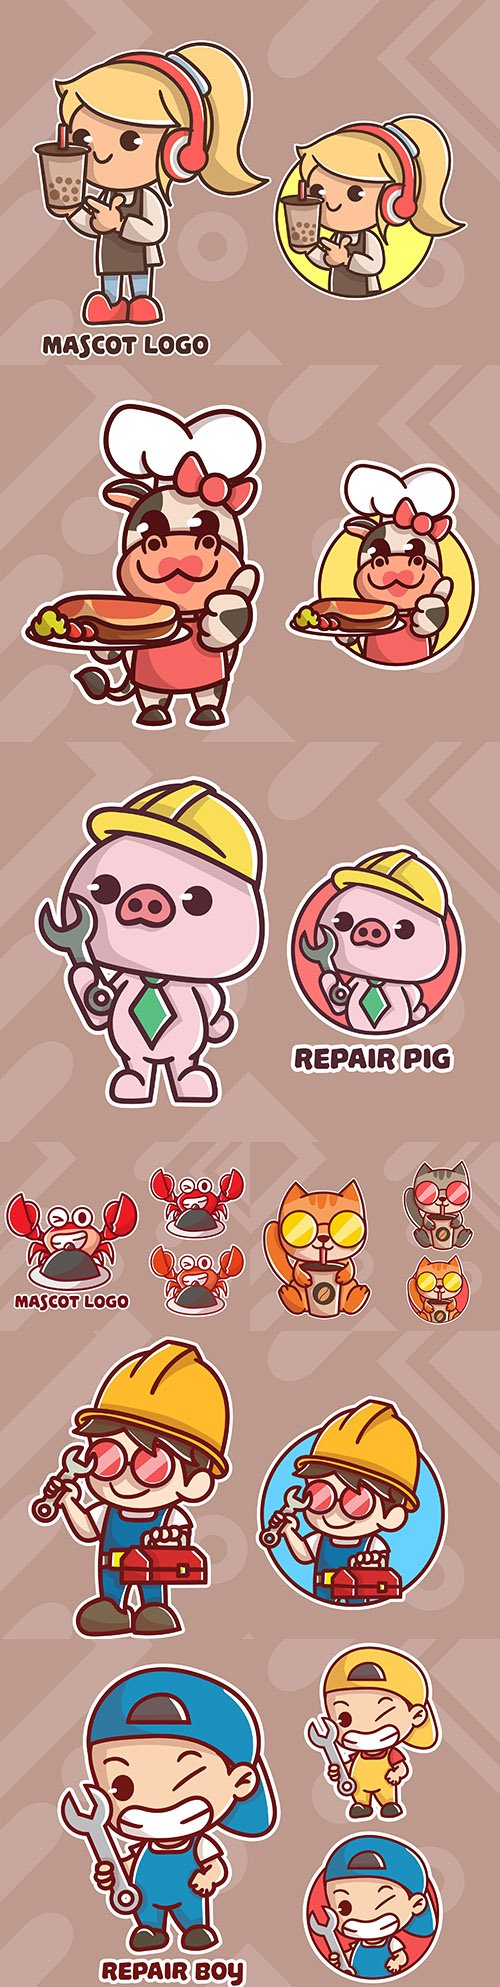 Cute logo and animal mascot with extra appearance